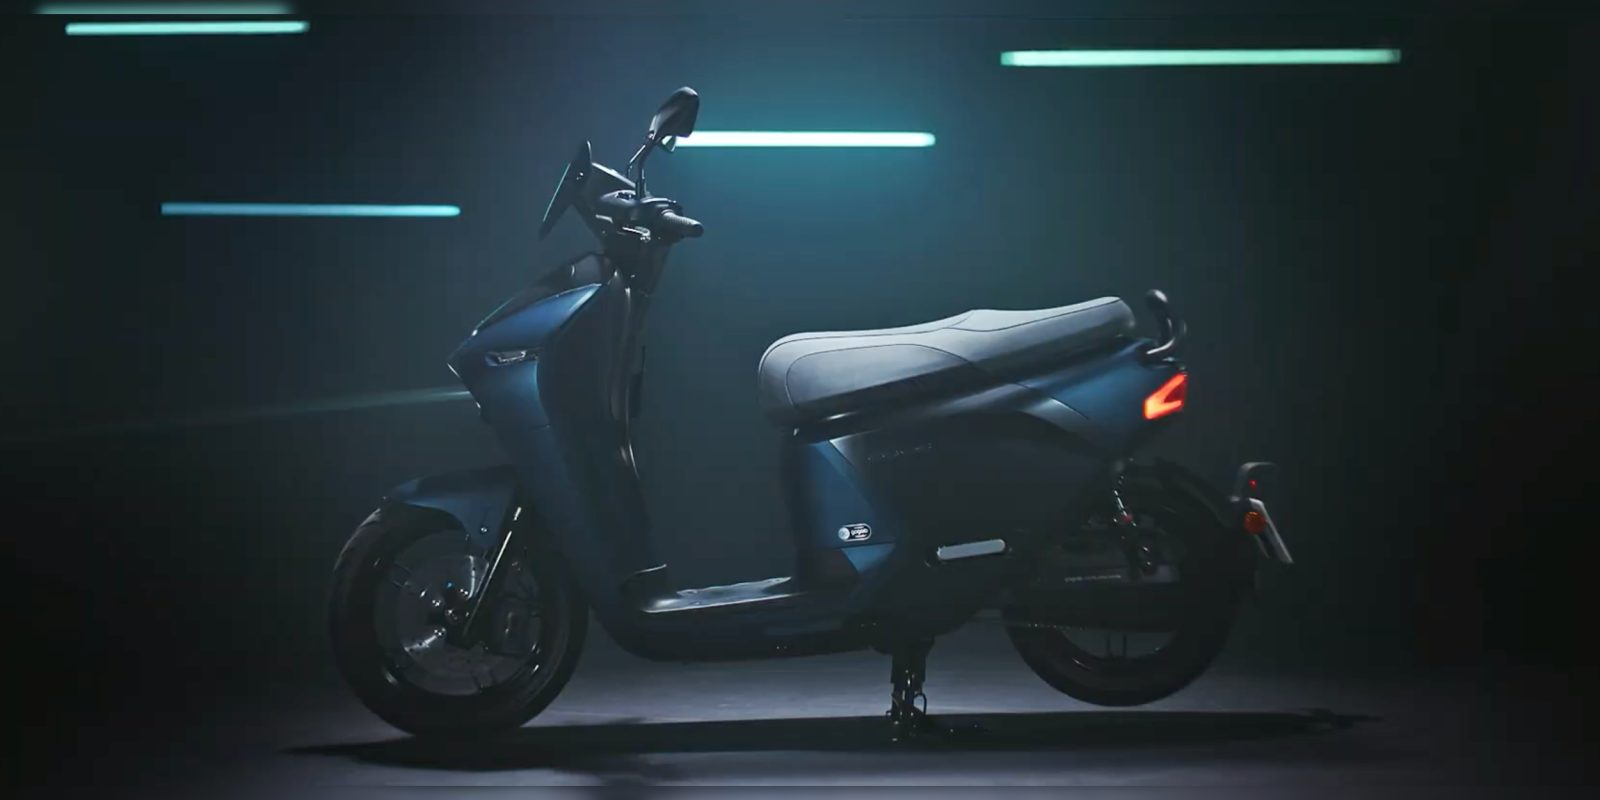 ed77d00acbb Yamaha EC-05 electric scooter unveiled with swappable Gogoro batteries